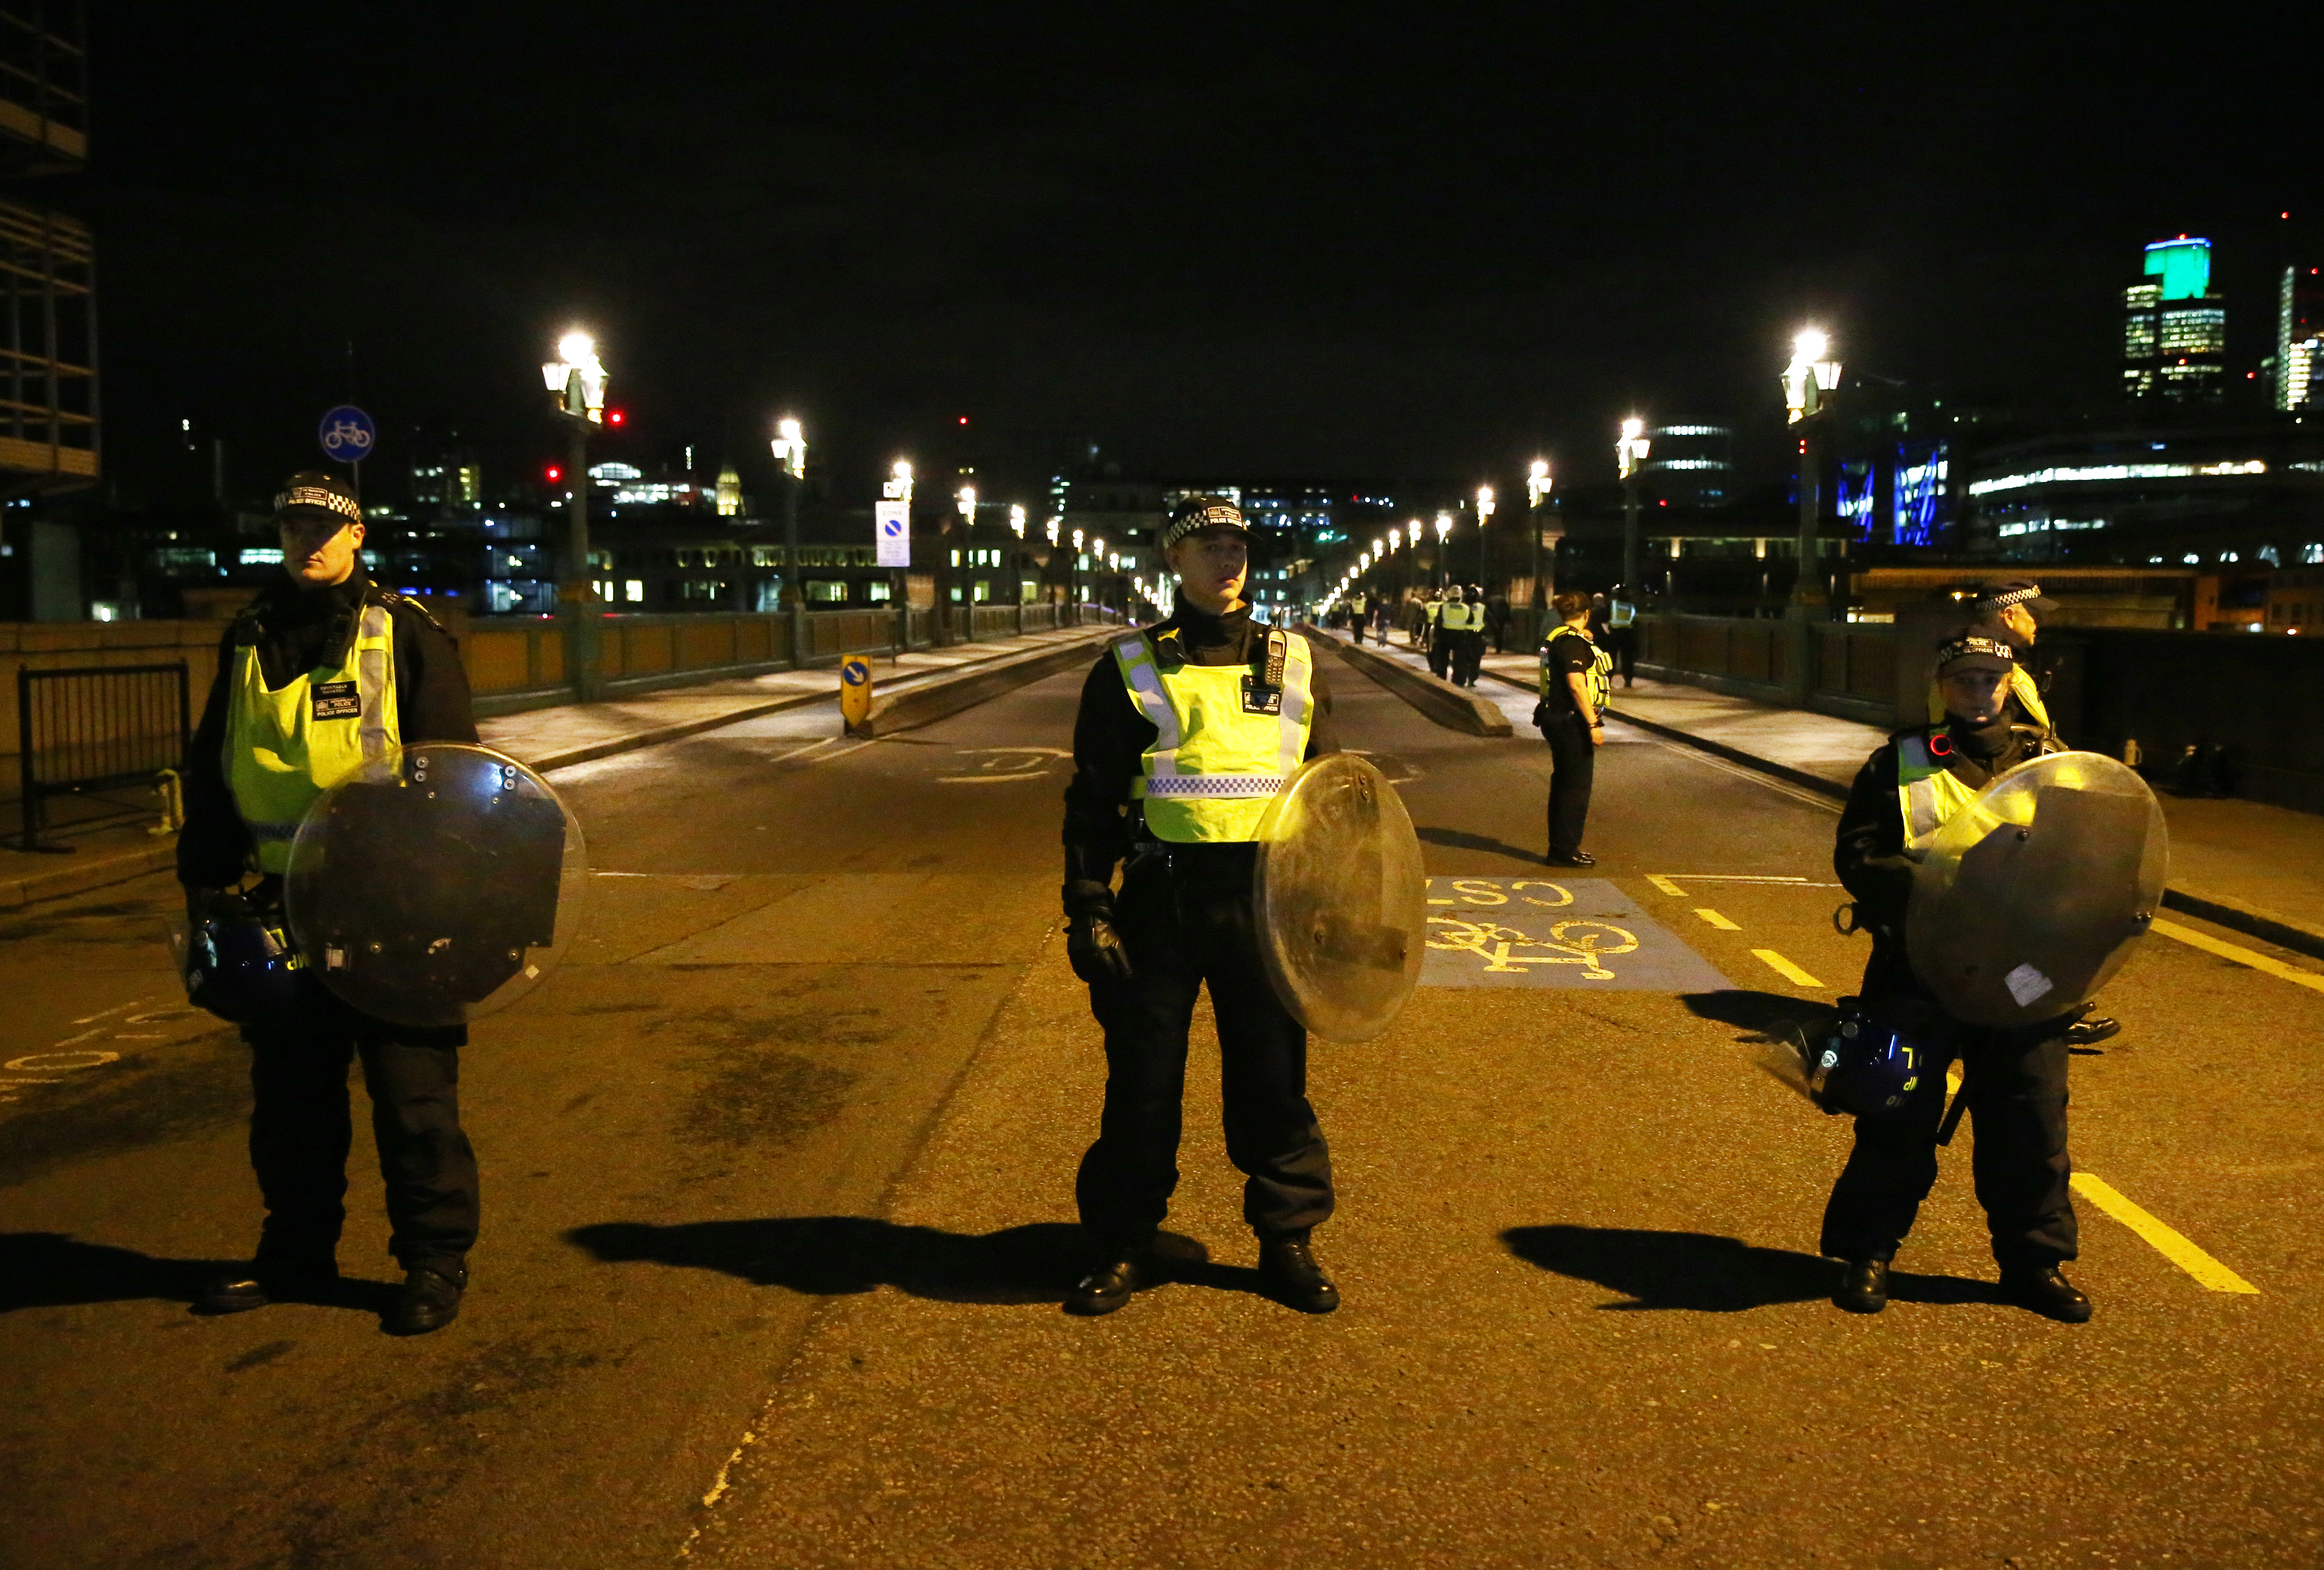 Police officers guard the approach to Southwark Bridge after an incident near London Bridge in London, Britain June 4, 2017.